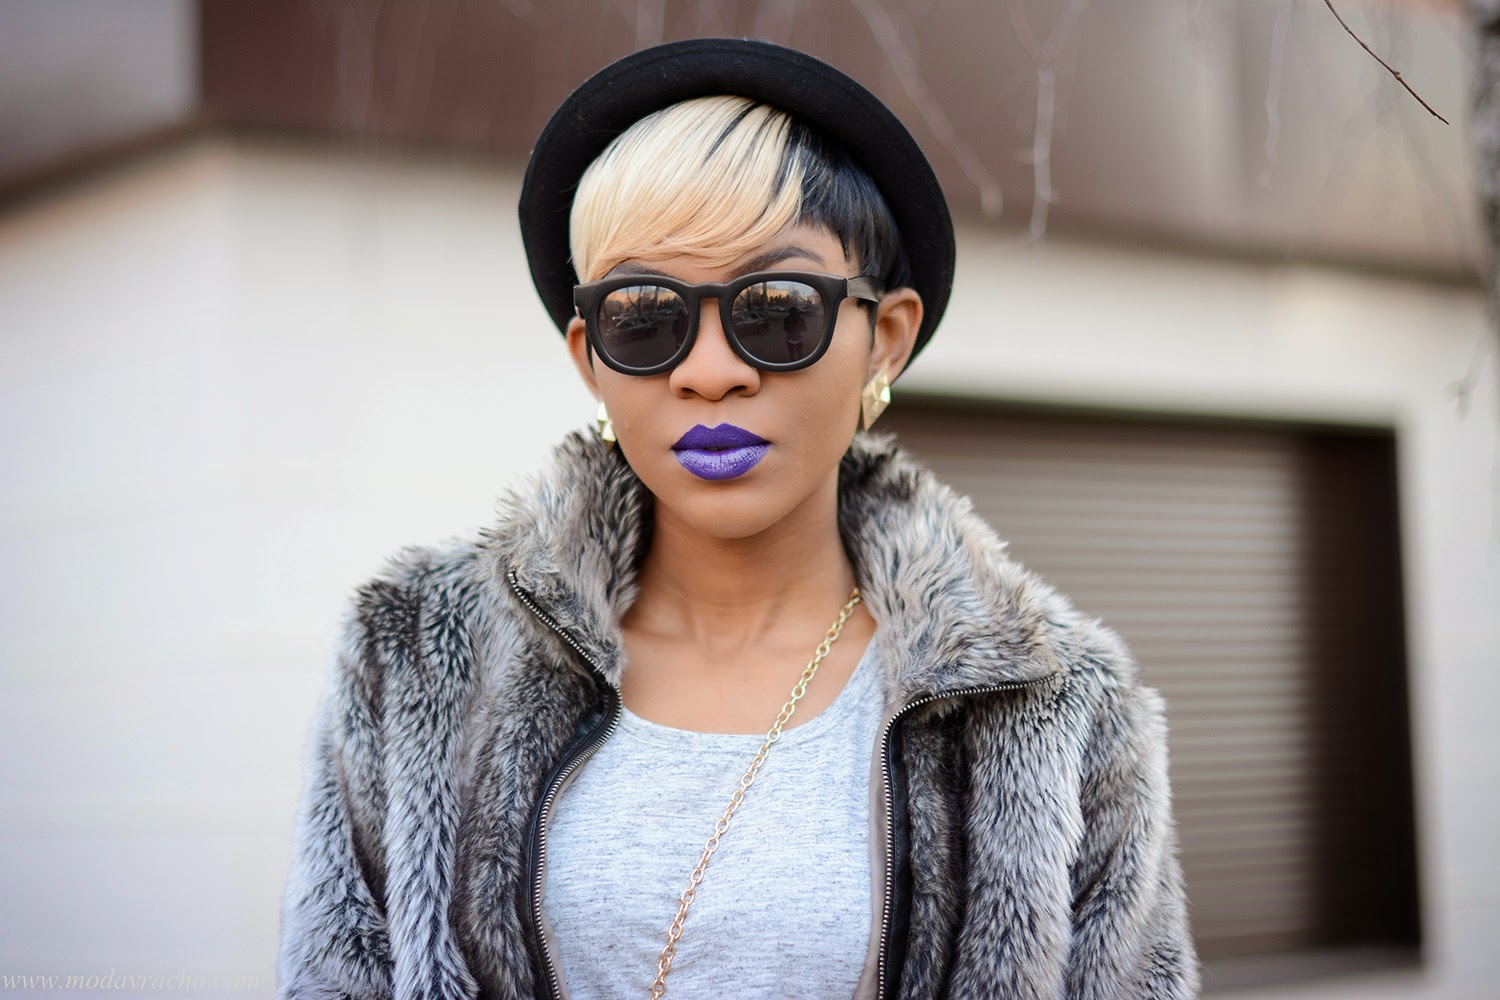 Style Blogger Modavracha purple lipstick and grey outfit.